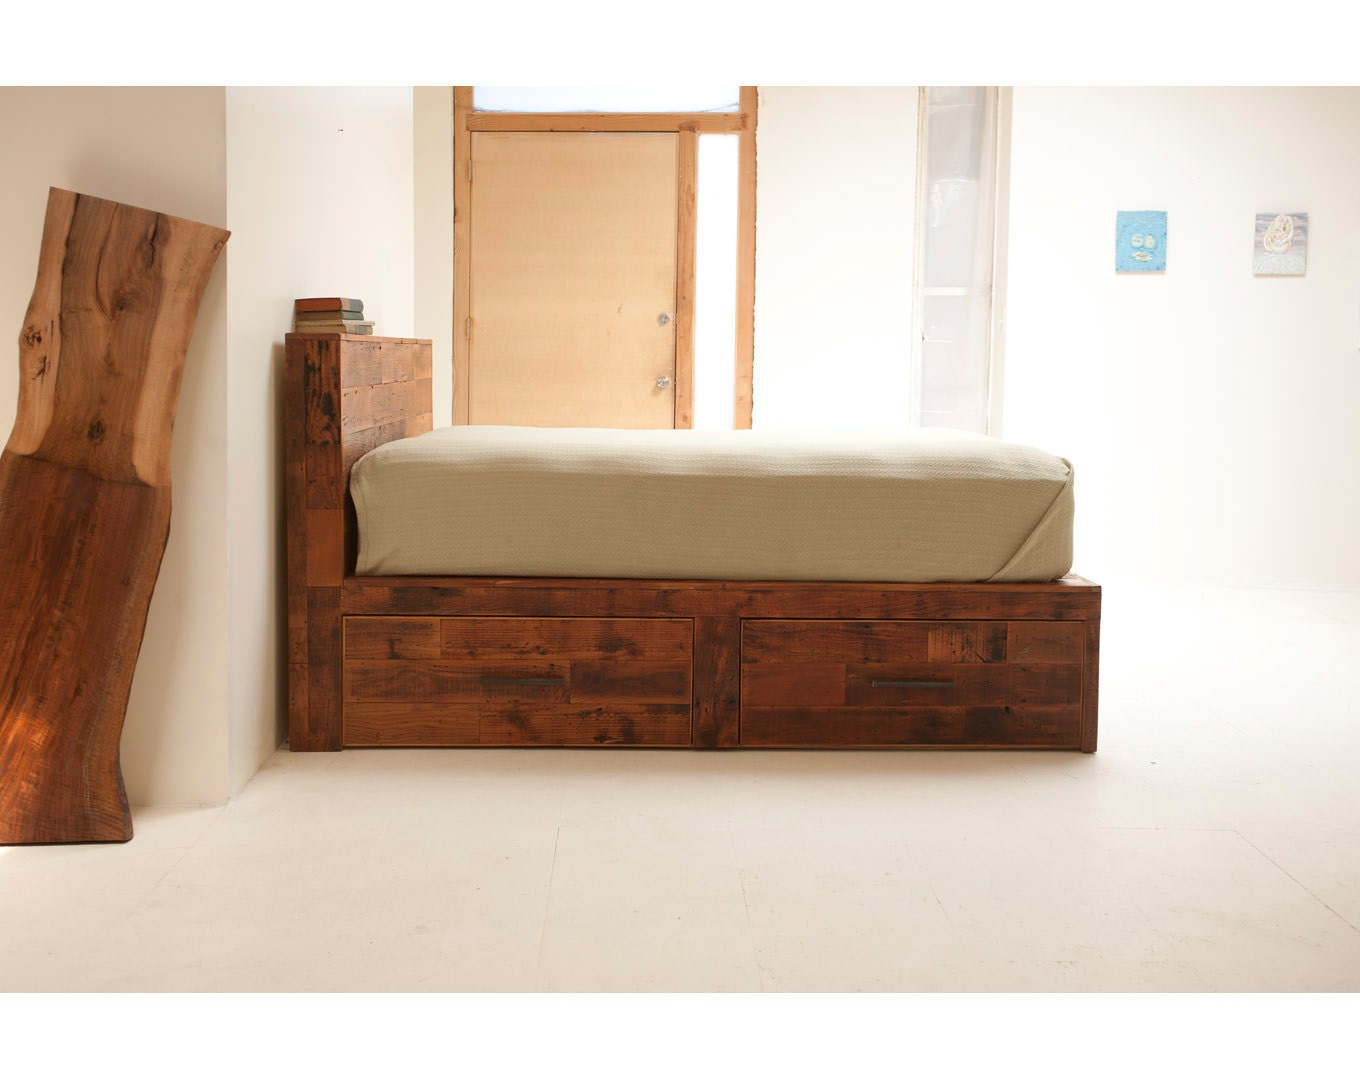 ... Reclaimed Old Growth Storage Bed. 🔎zoom - Reclaimed Old Growth Storage Bed